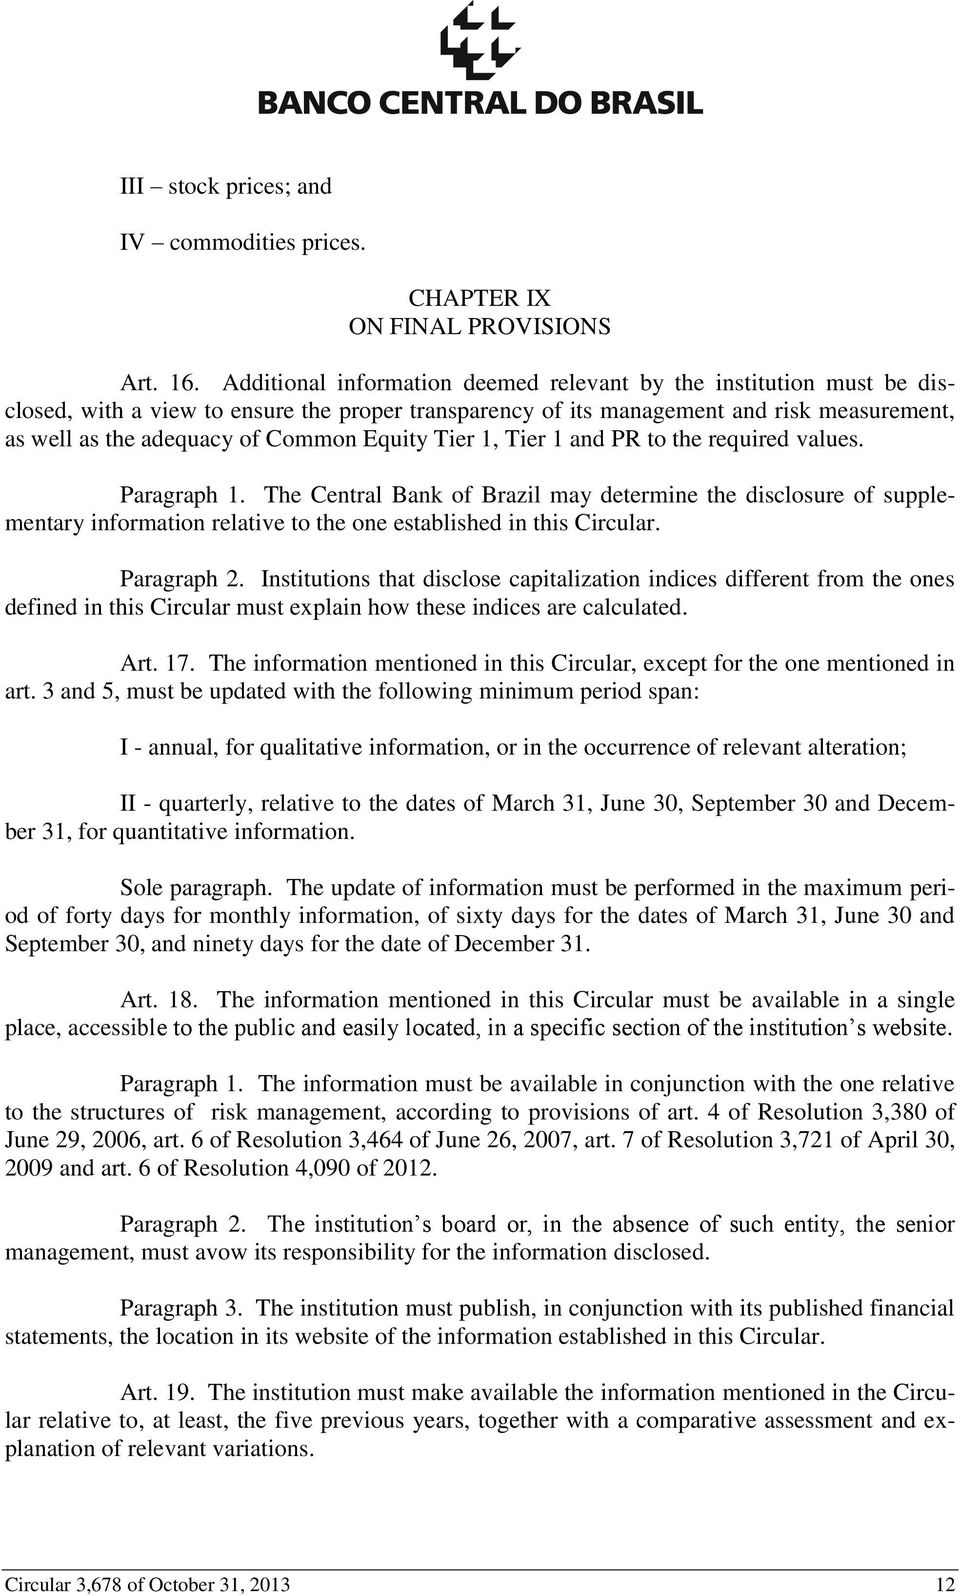 Equity Tier 1, Tier 1 and PR to the required values. Paragraph 1. The Central Bank of Brazil may determine the disclosure of supplementary information relative to the one established in this Circular.